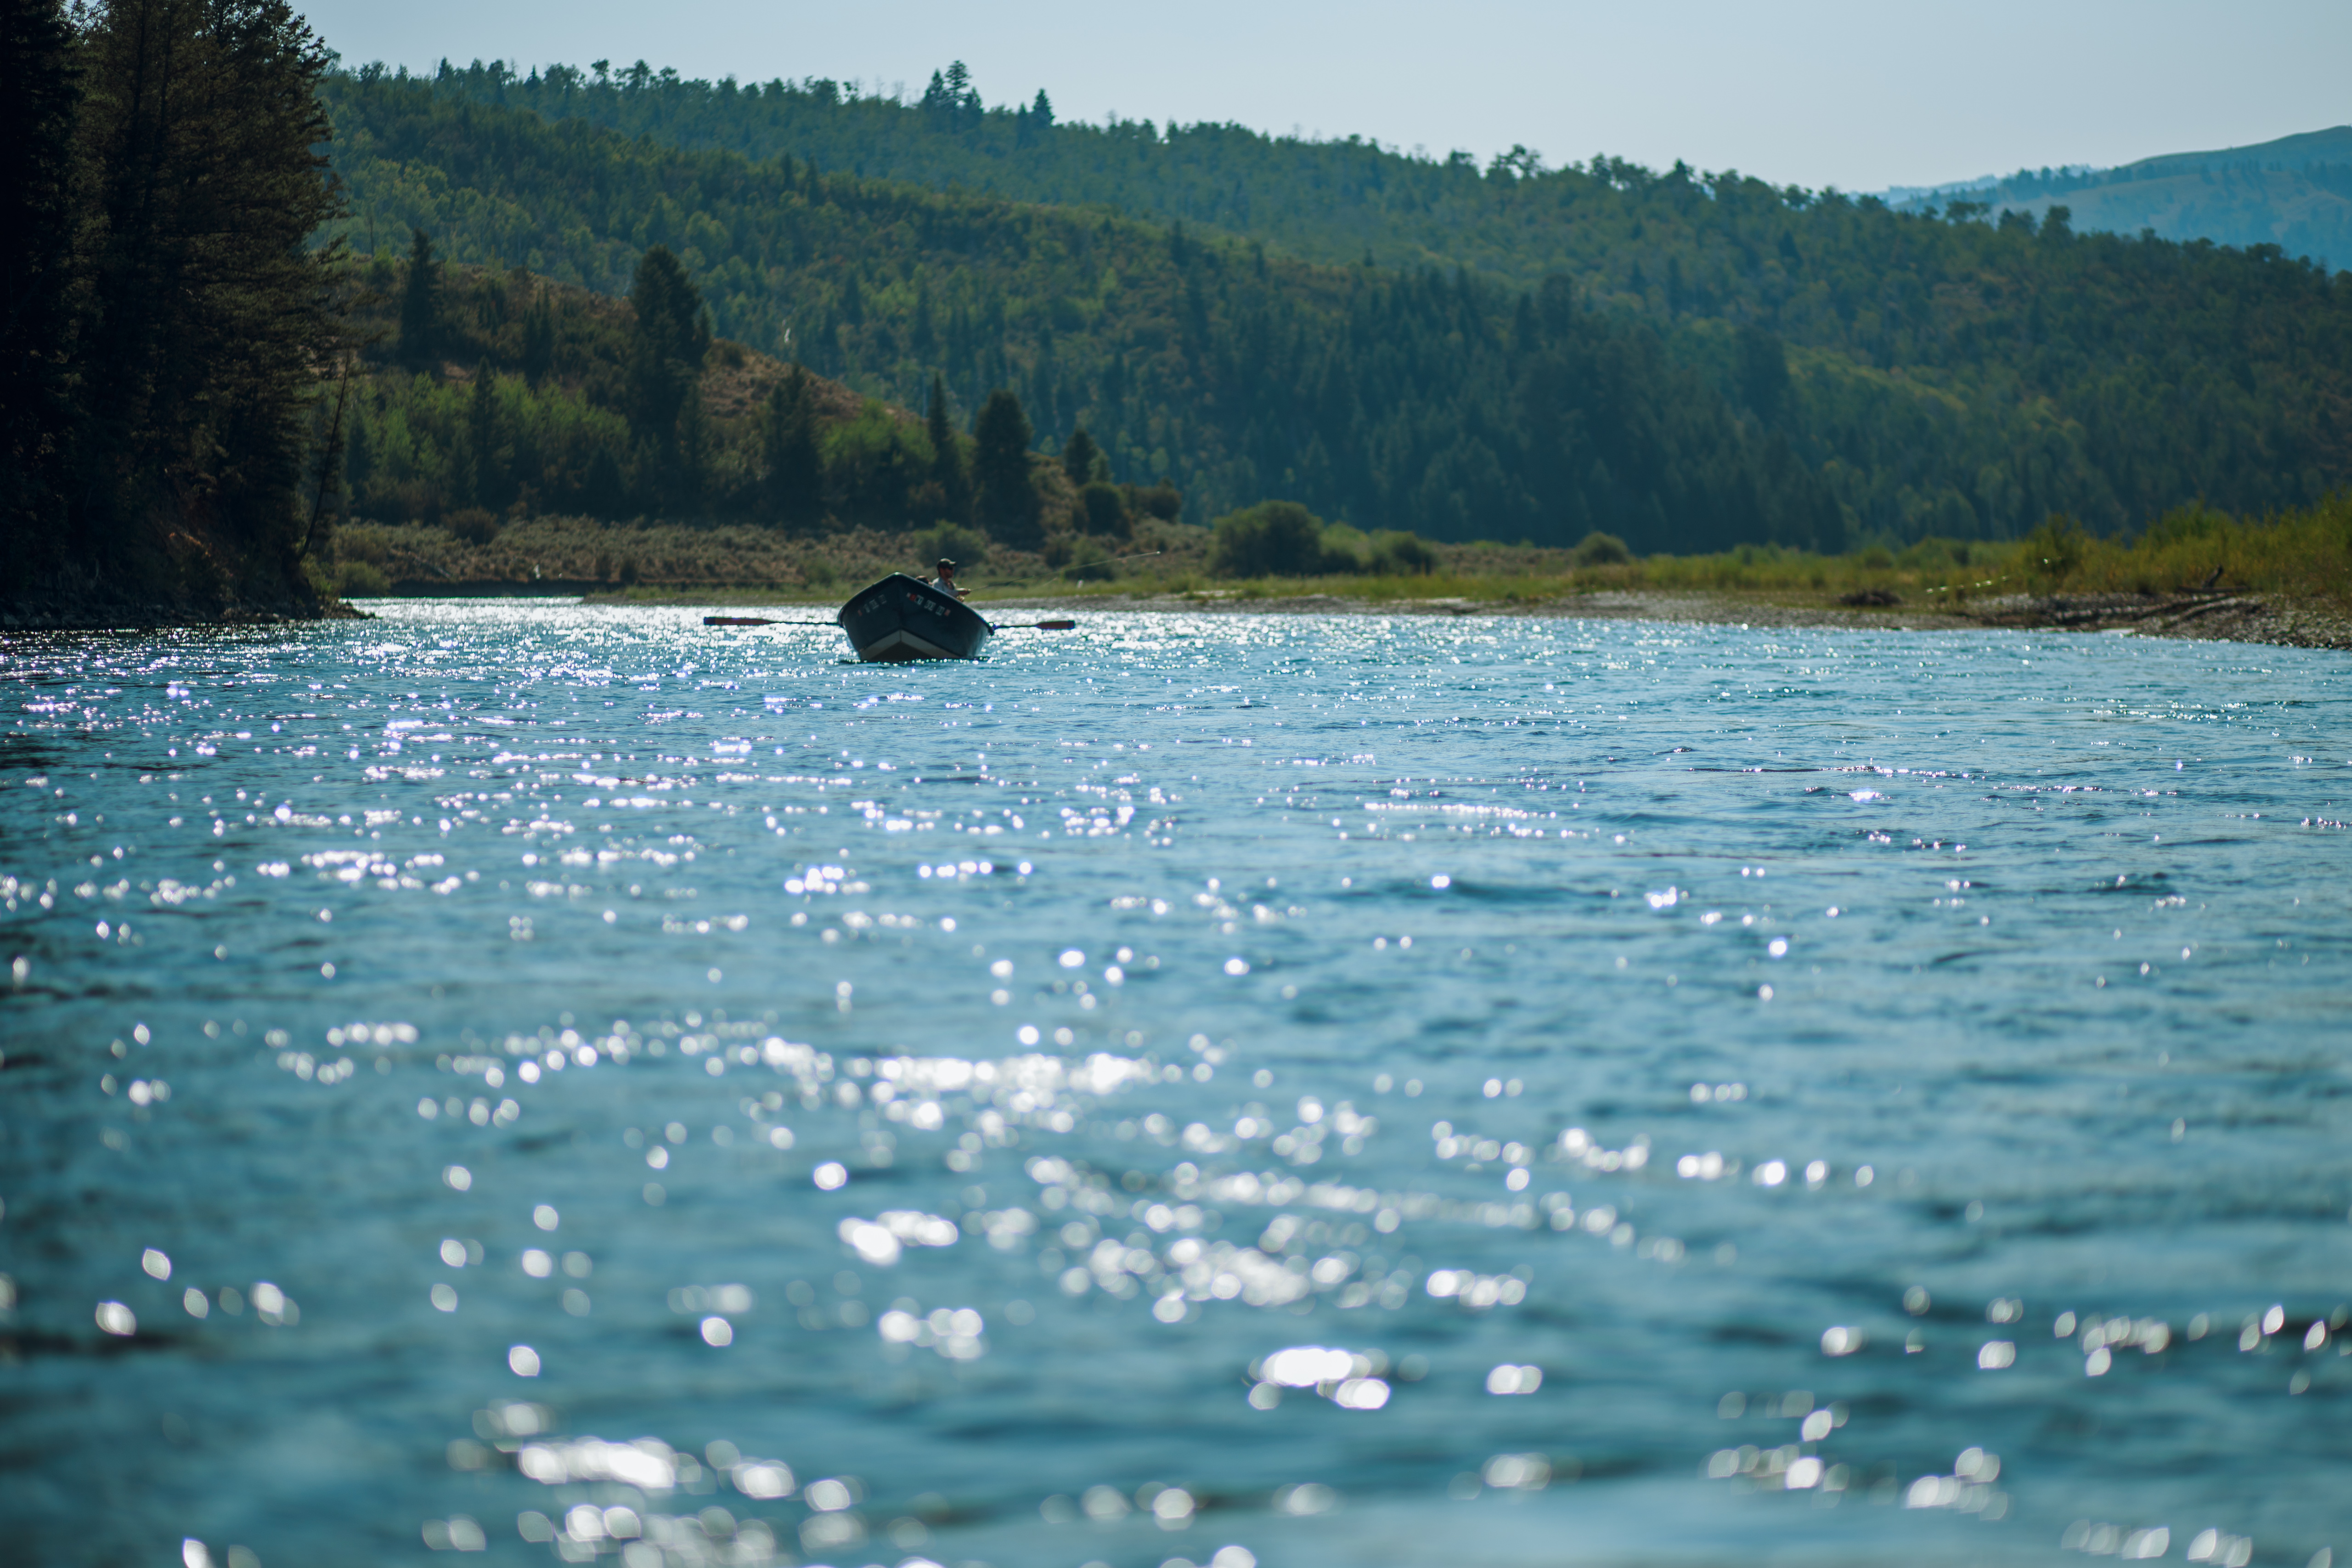 jackson-hole-fishing-adventures-65.jpg